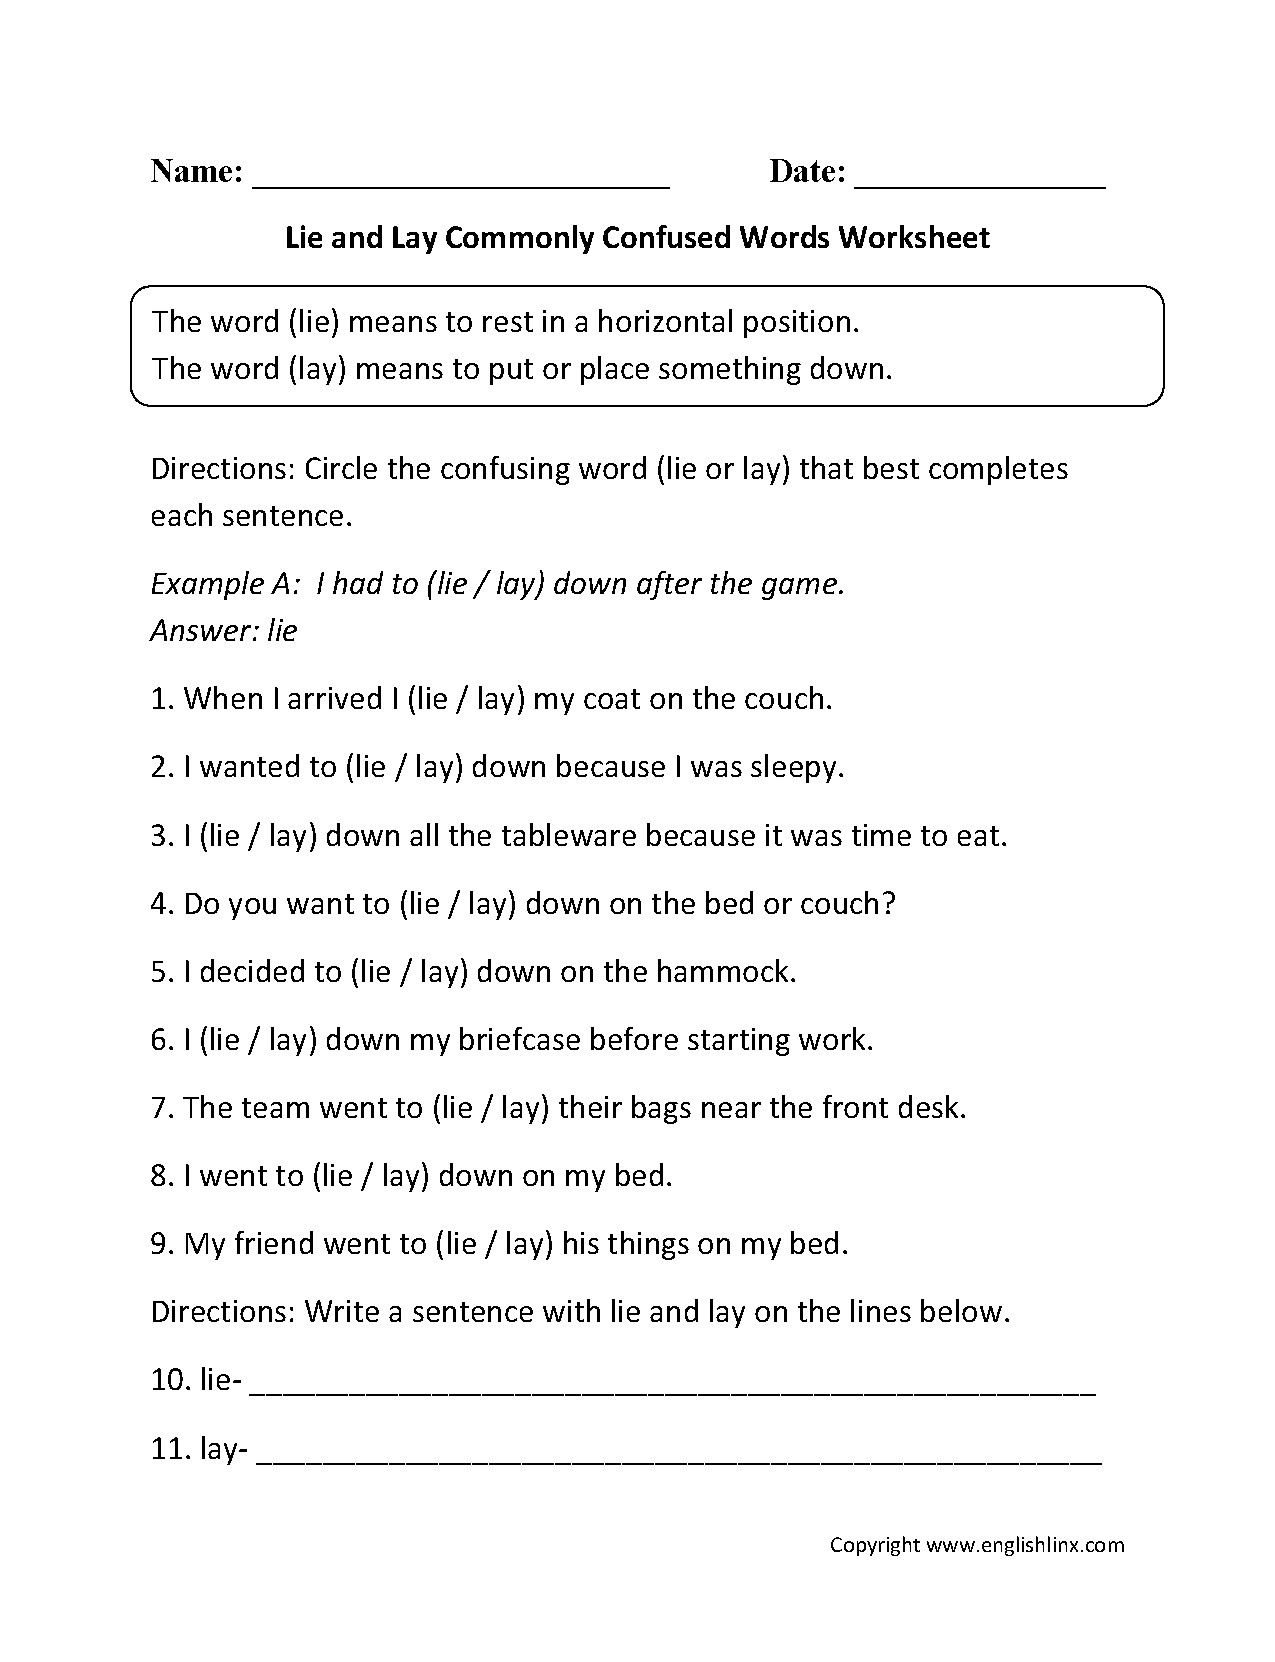 Lie And Lay Commonly Confused Words Worksheets